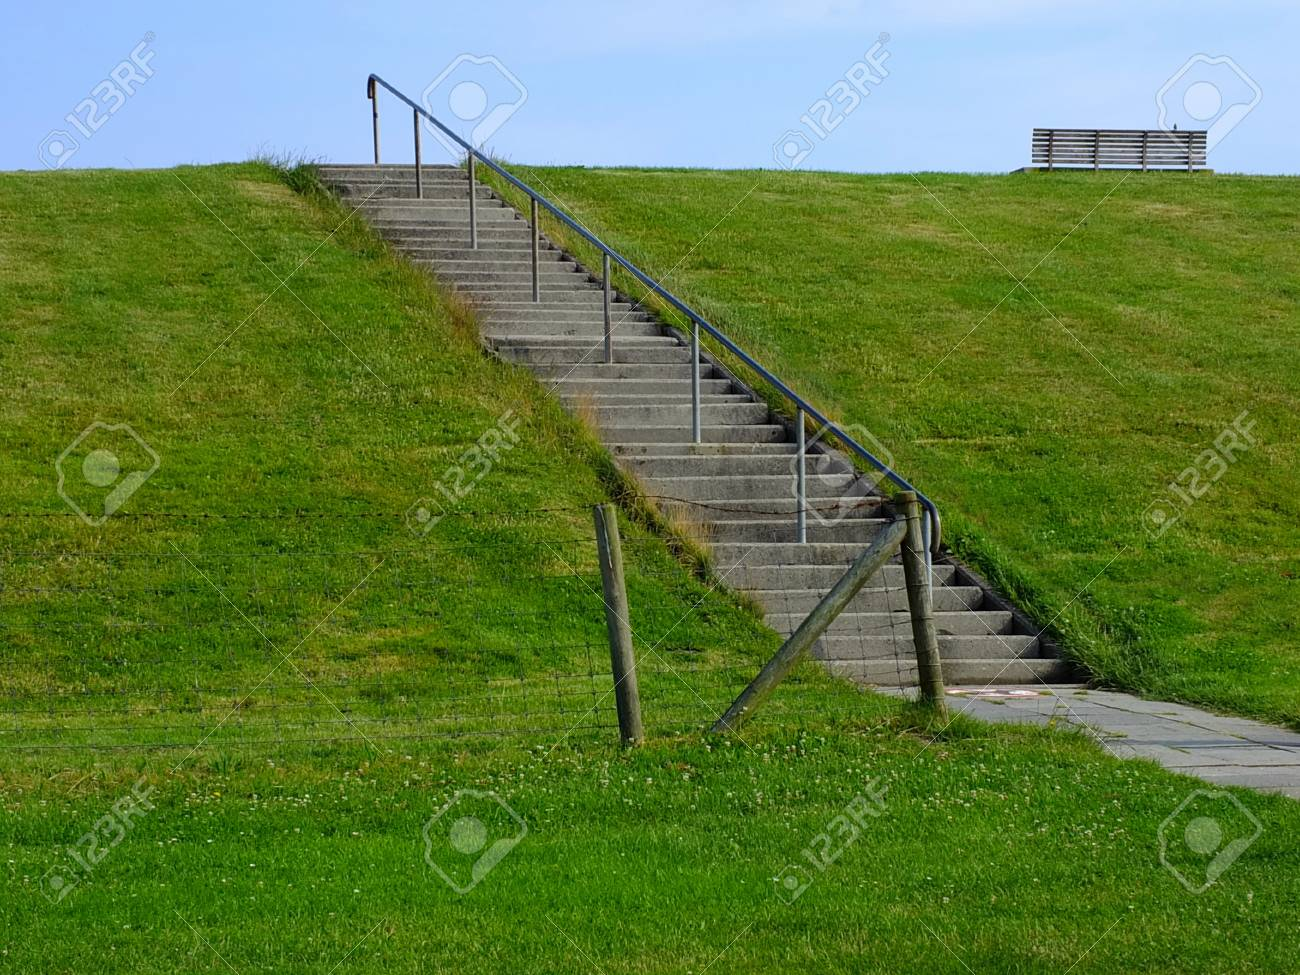 stairs on a dike along the North Sea Coast Standard-Bild - 47409630